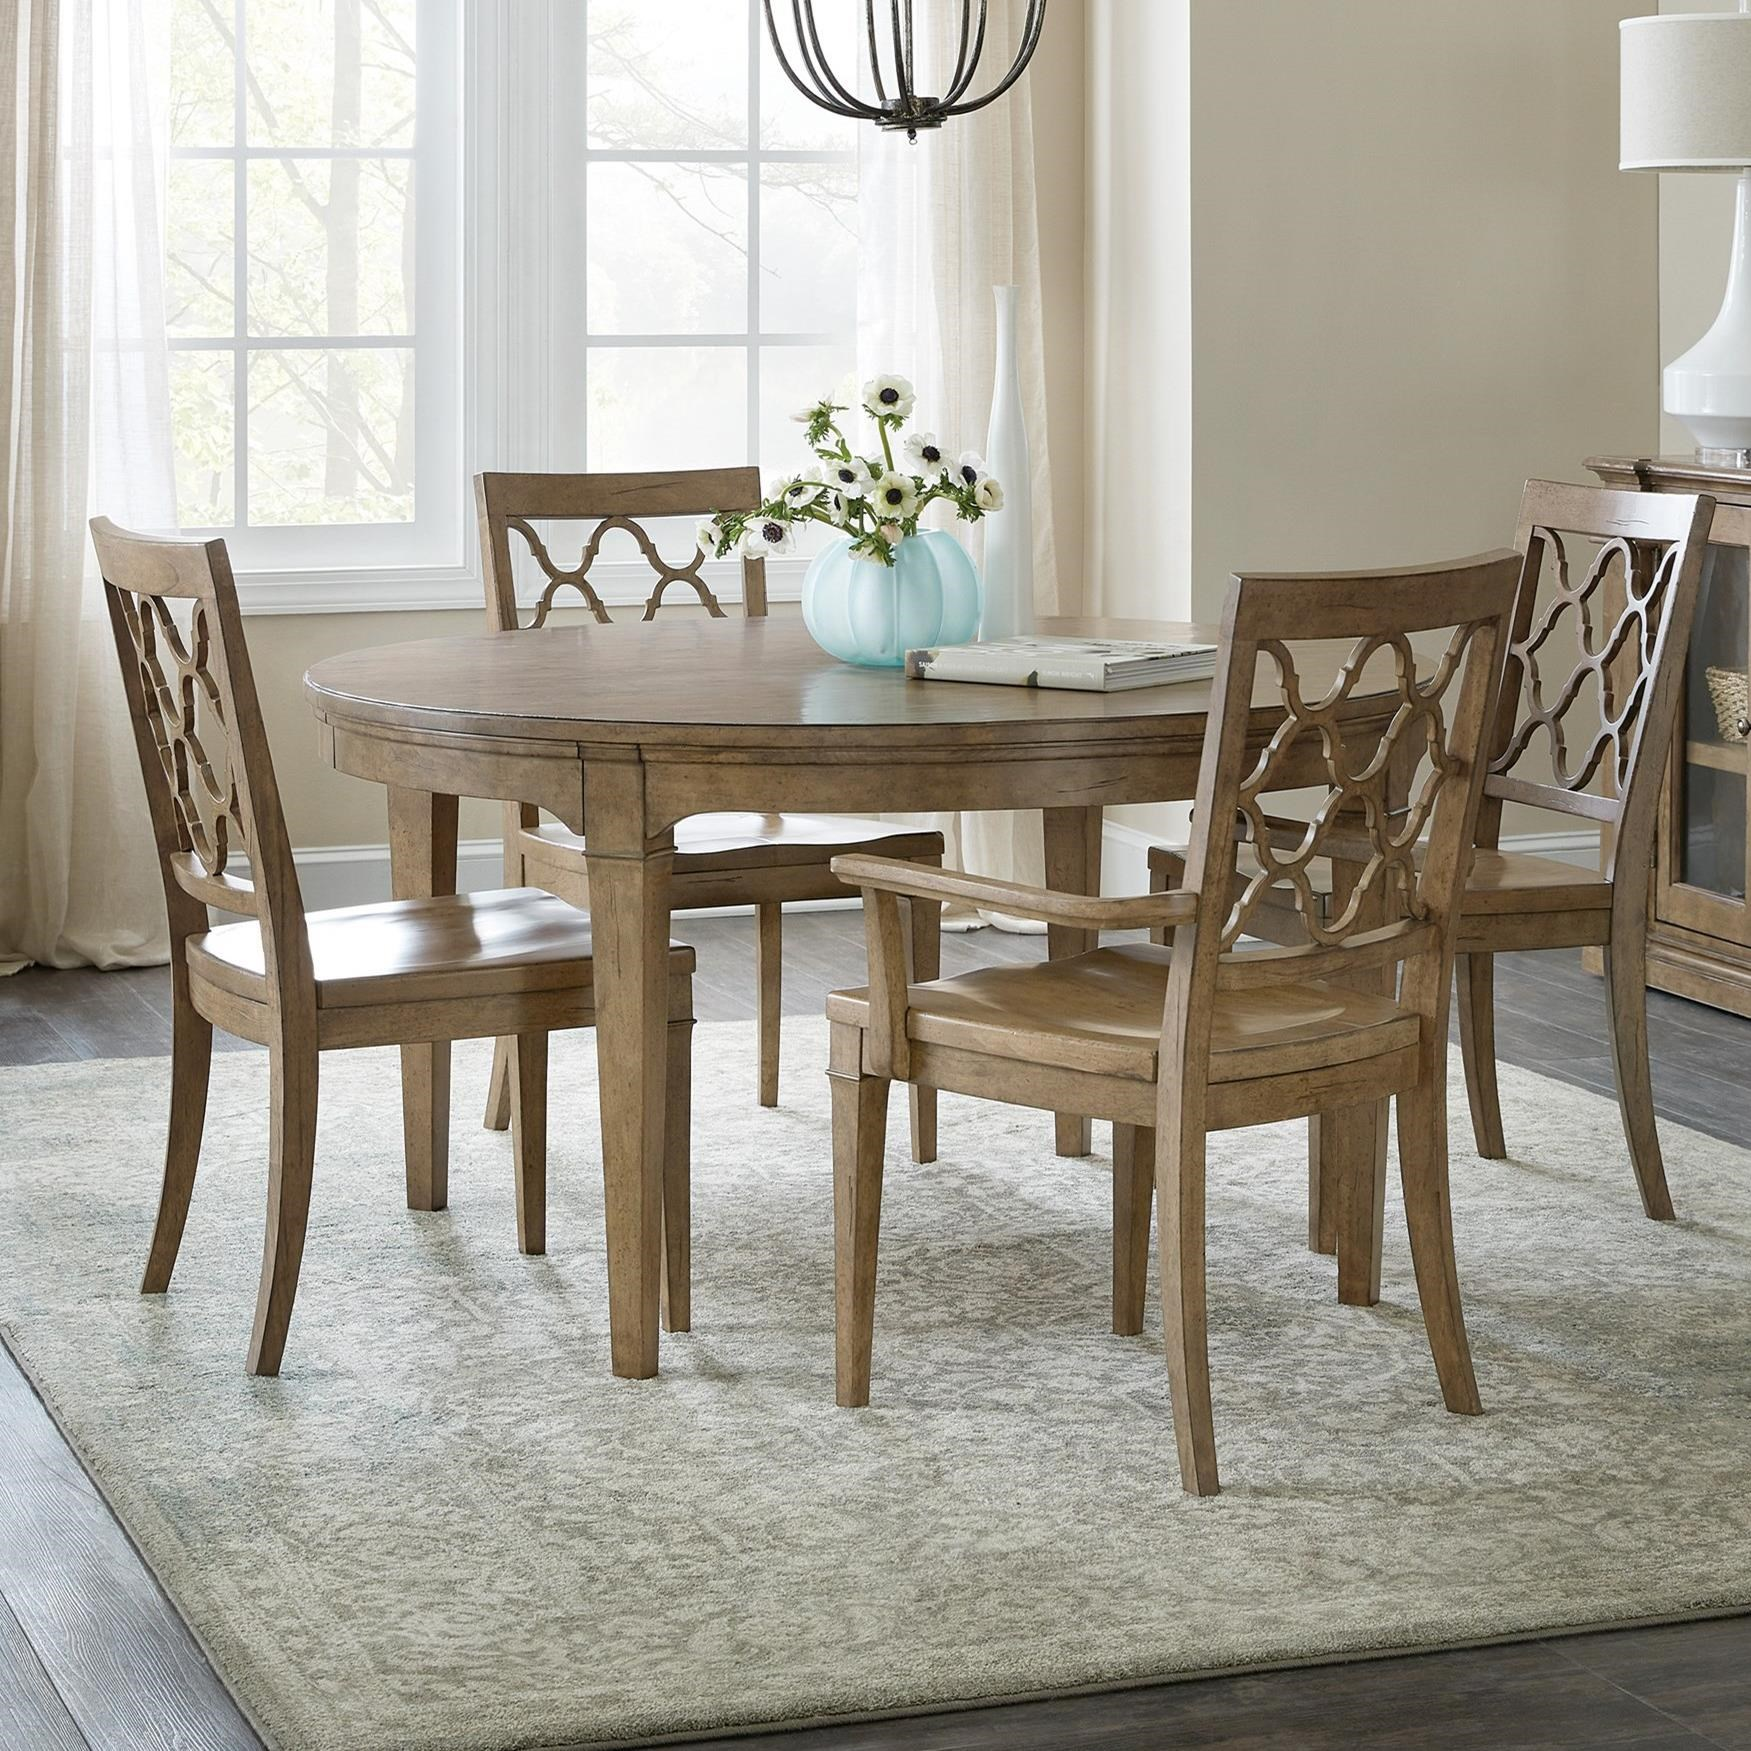 Montebello 5-Piece Dining Set by Hooker Furniture at Baer's Furniture